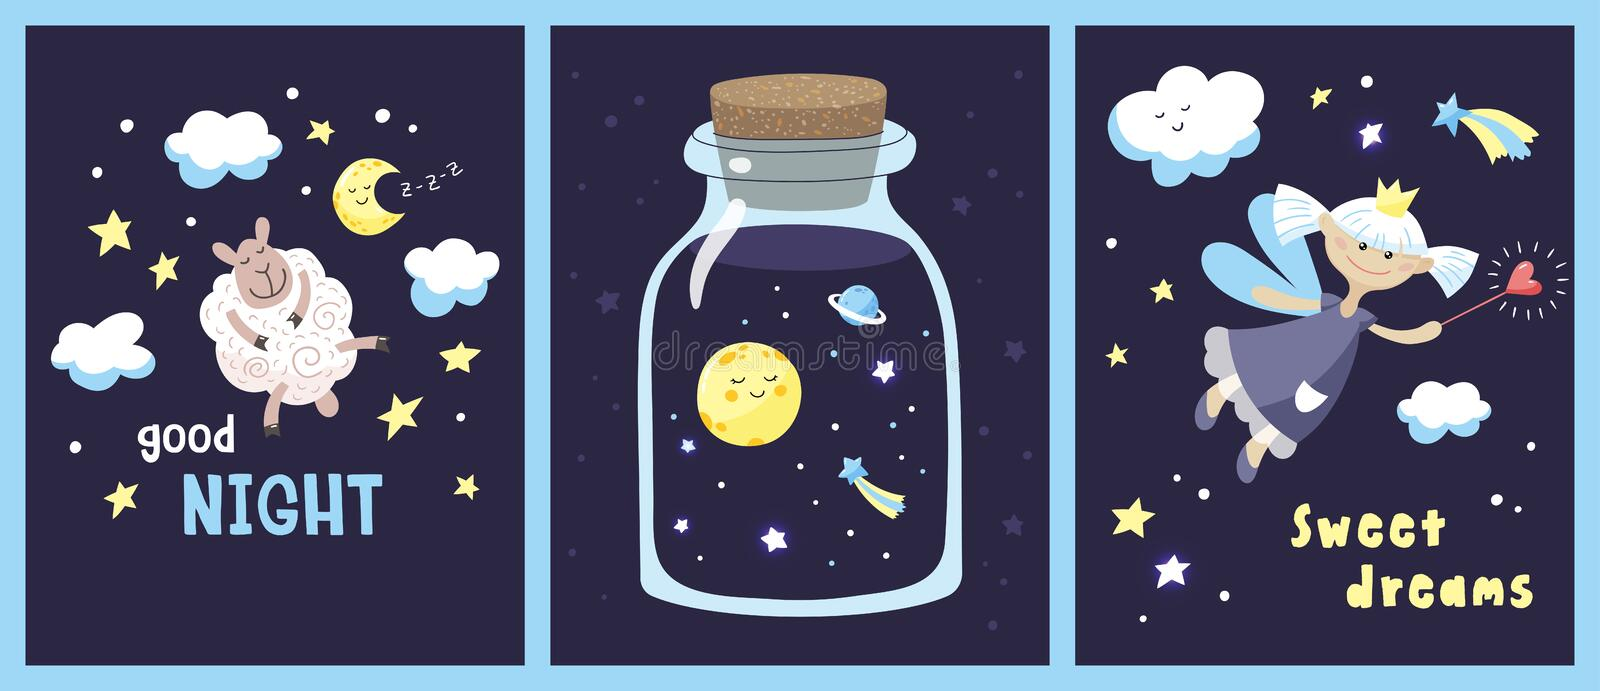 Set of cards with cute cartoon characters and inscriptions in the starry night sky. royalty free stock photos